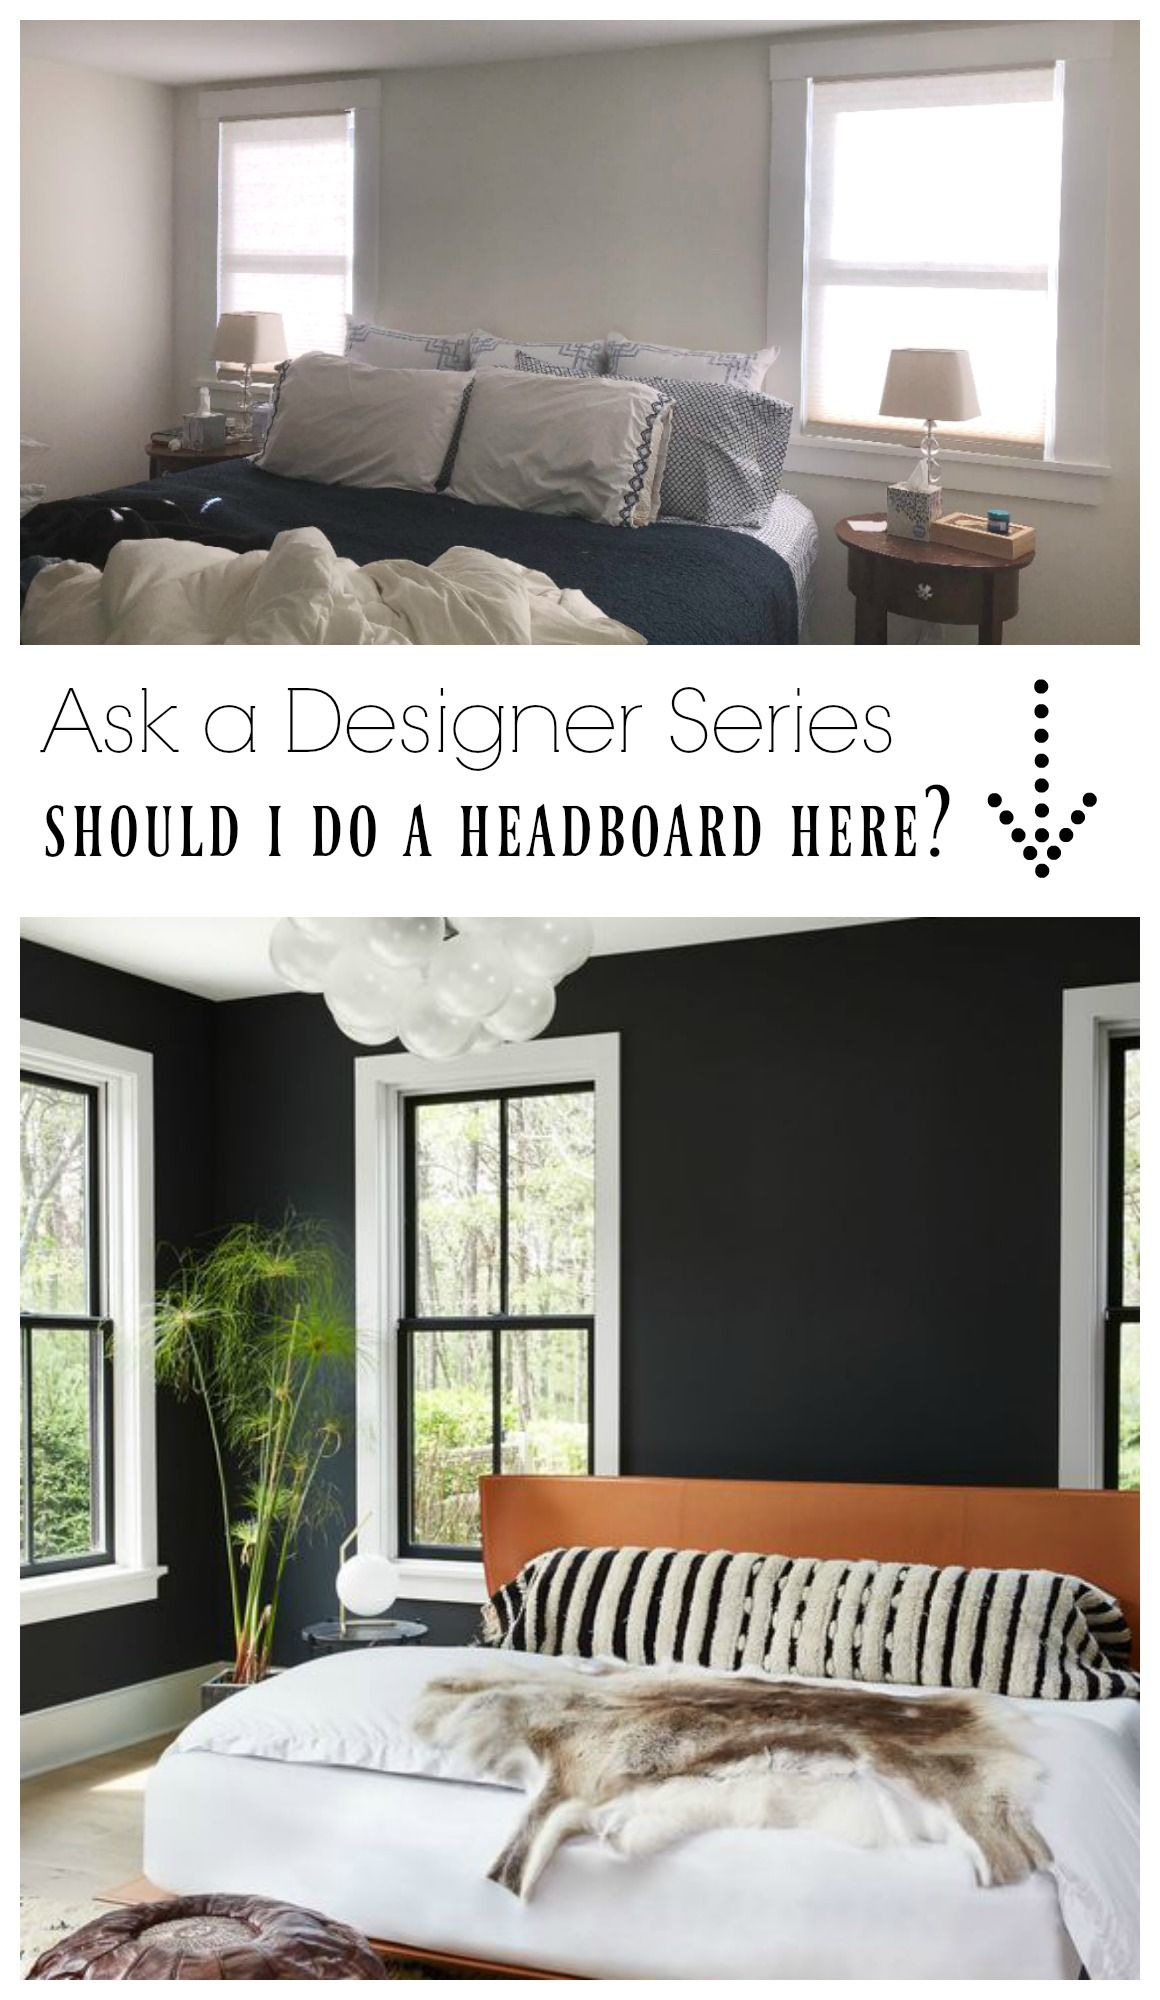 Ask a Designer Series Entries, Bedrooms, Bookcases and